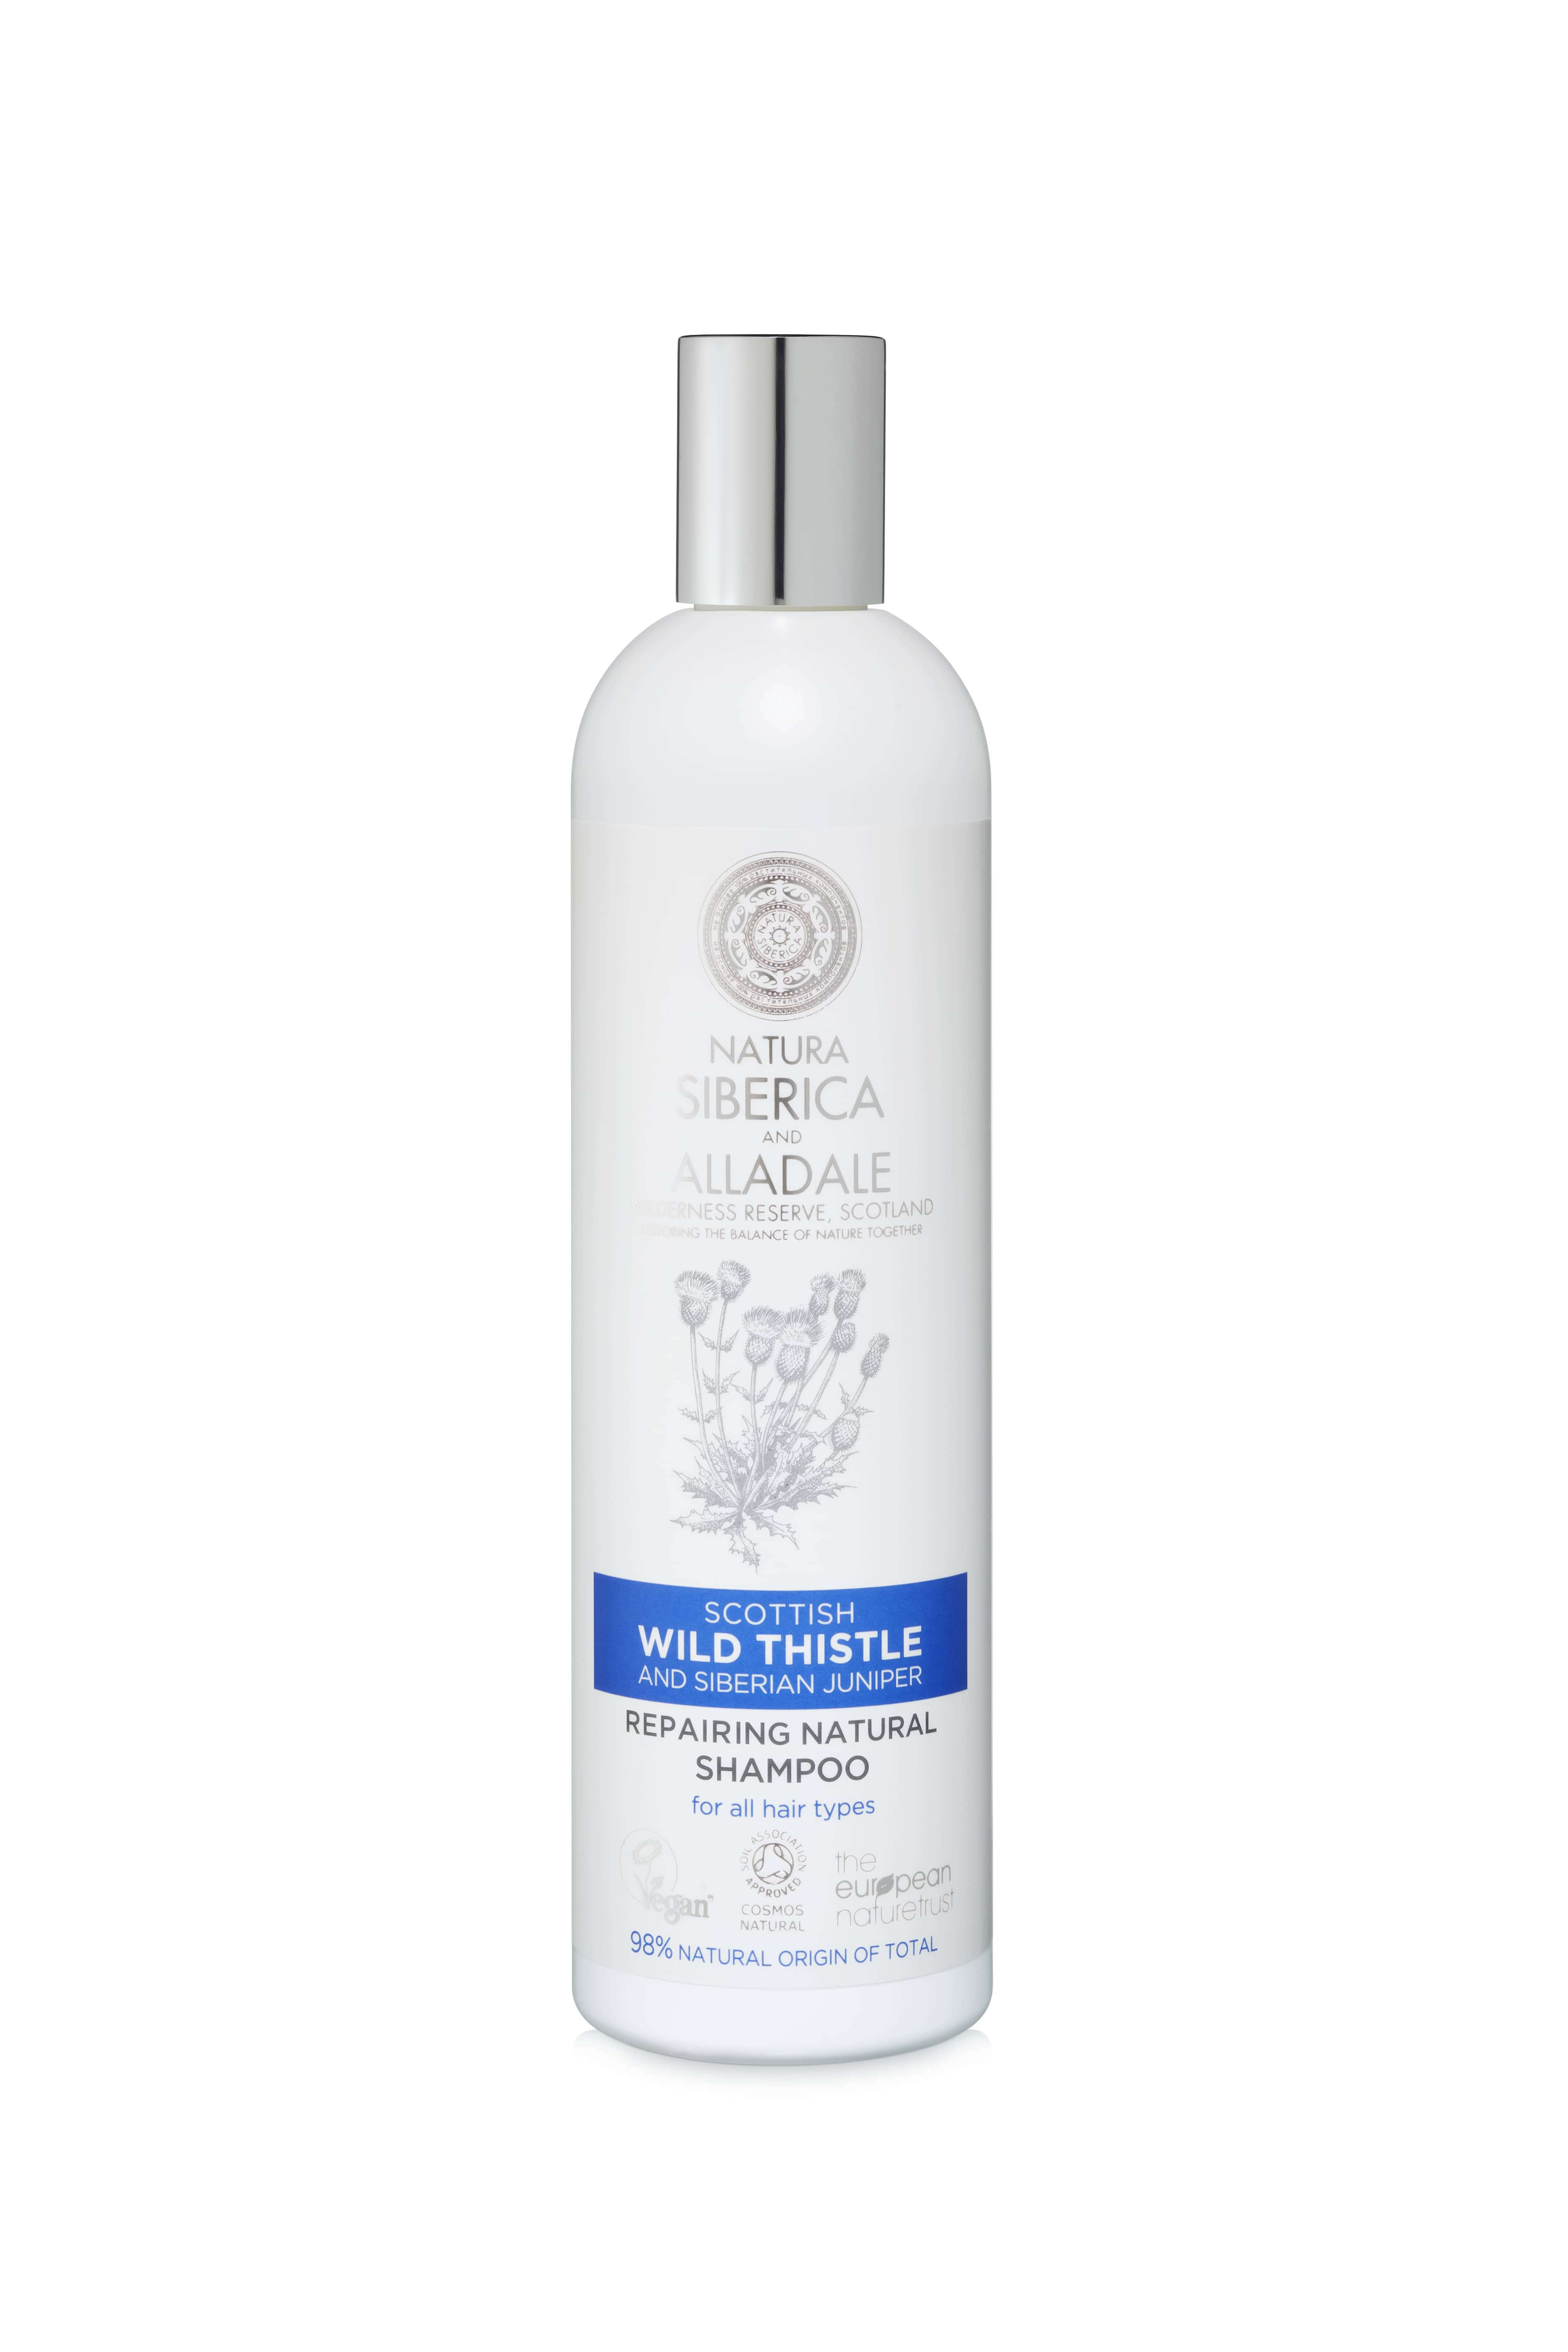 Alladale Repairing Natural Shampoo for All Hair Types